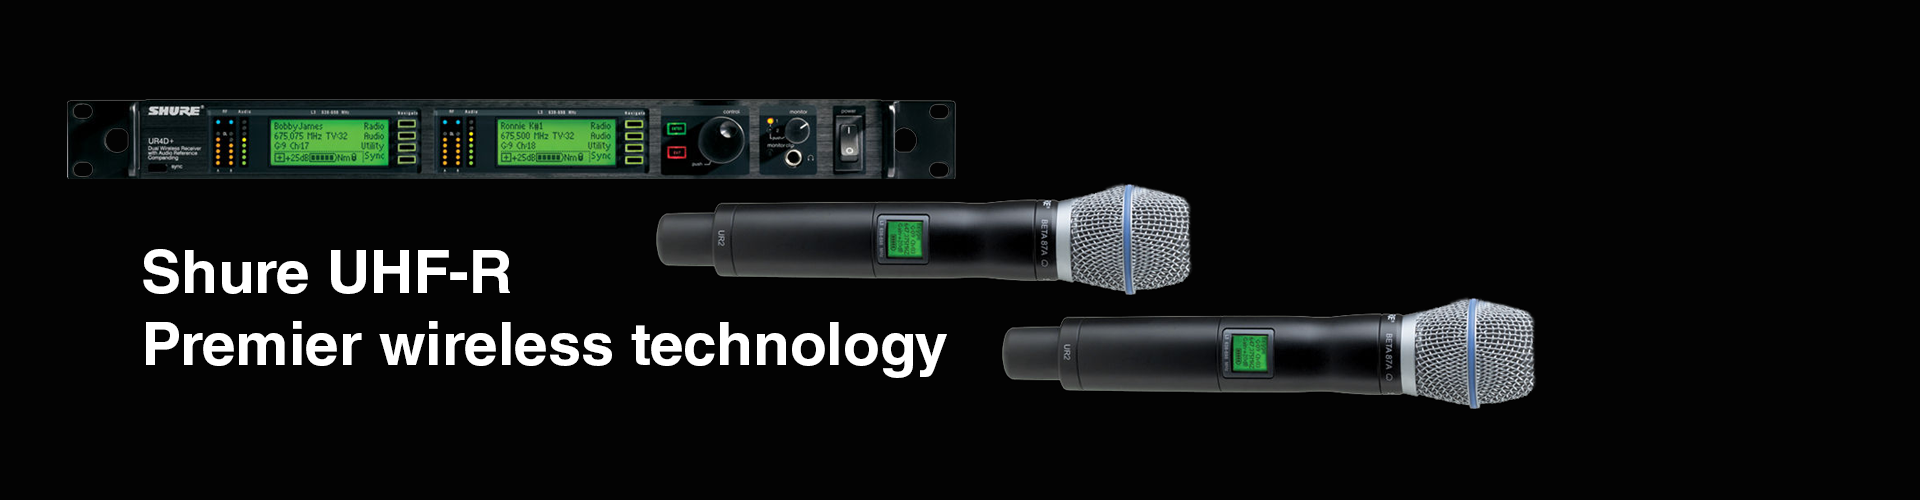 Shure UHF-R, Premier Wireless Technology